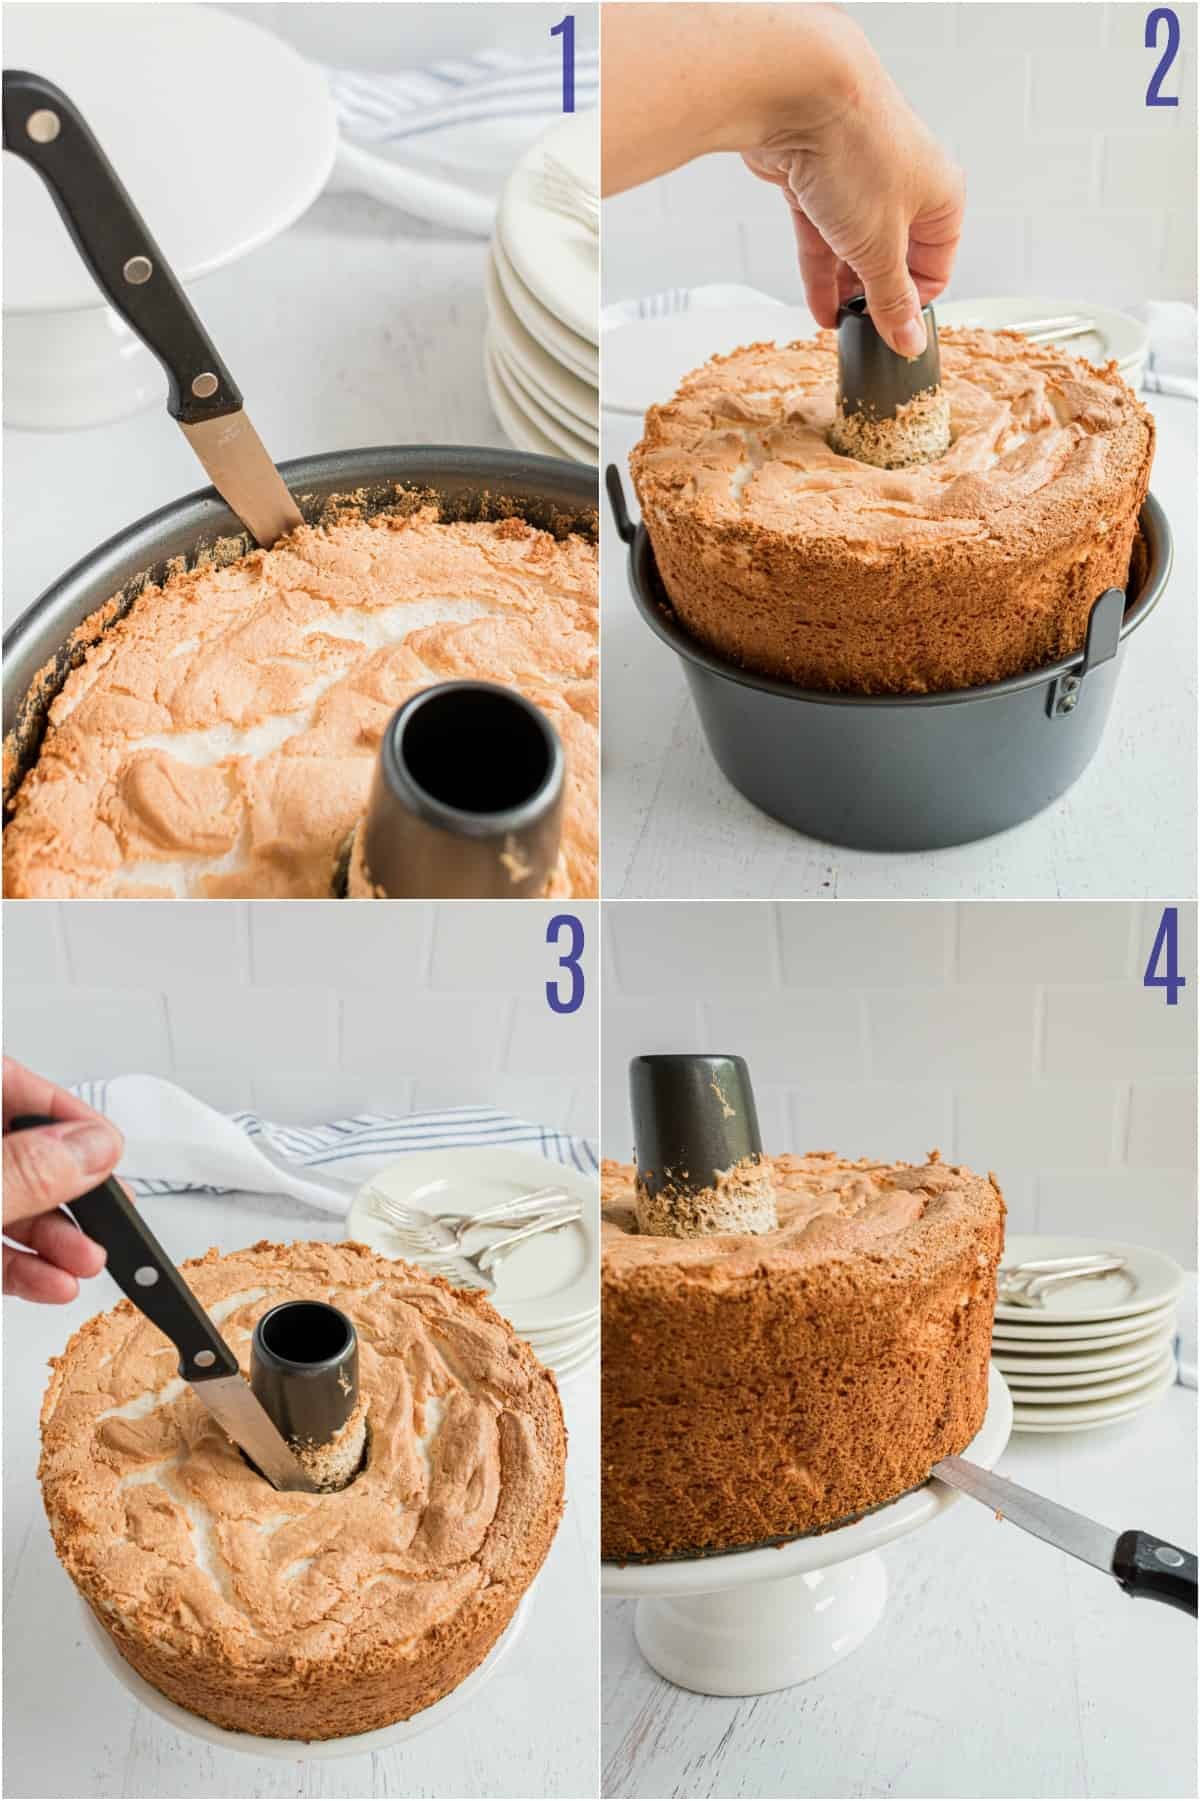 Step by step photos showing how to remove angel food cake from pan.